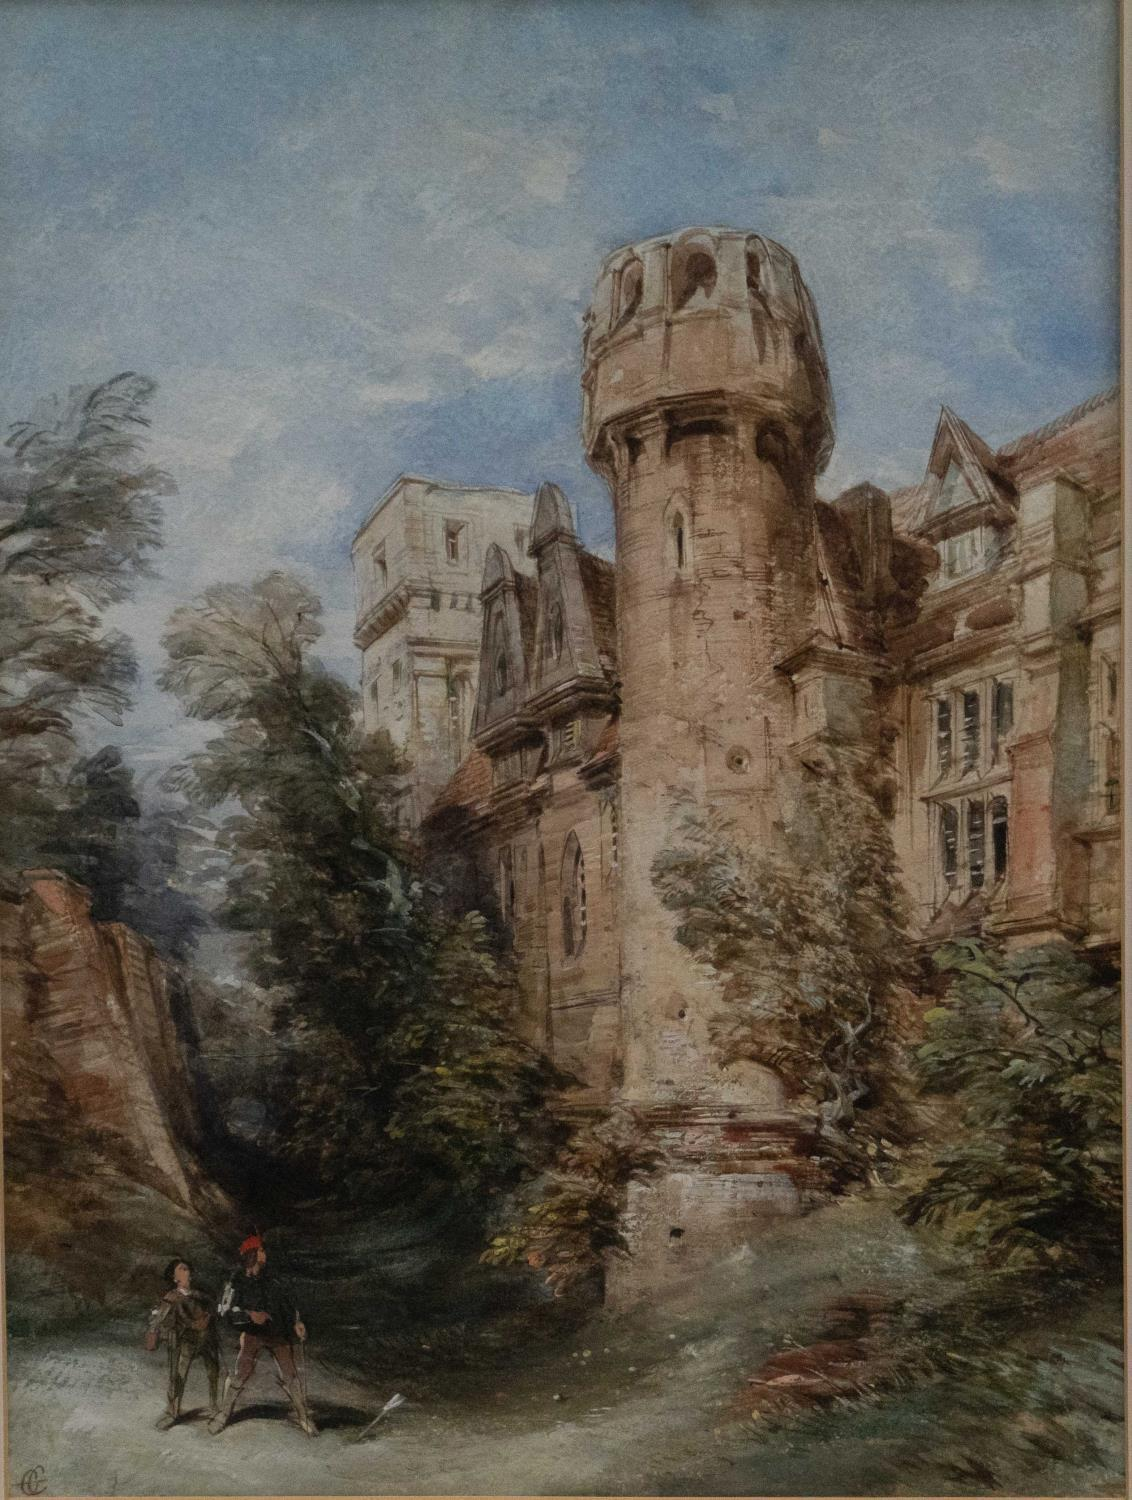 GEORGE CATTERMOLE, RWS (1800-1868) - ARCHER BEFORE A FORTIFIED MANOR HOUSE, SIGNED WITH INITIALS,